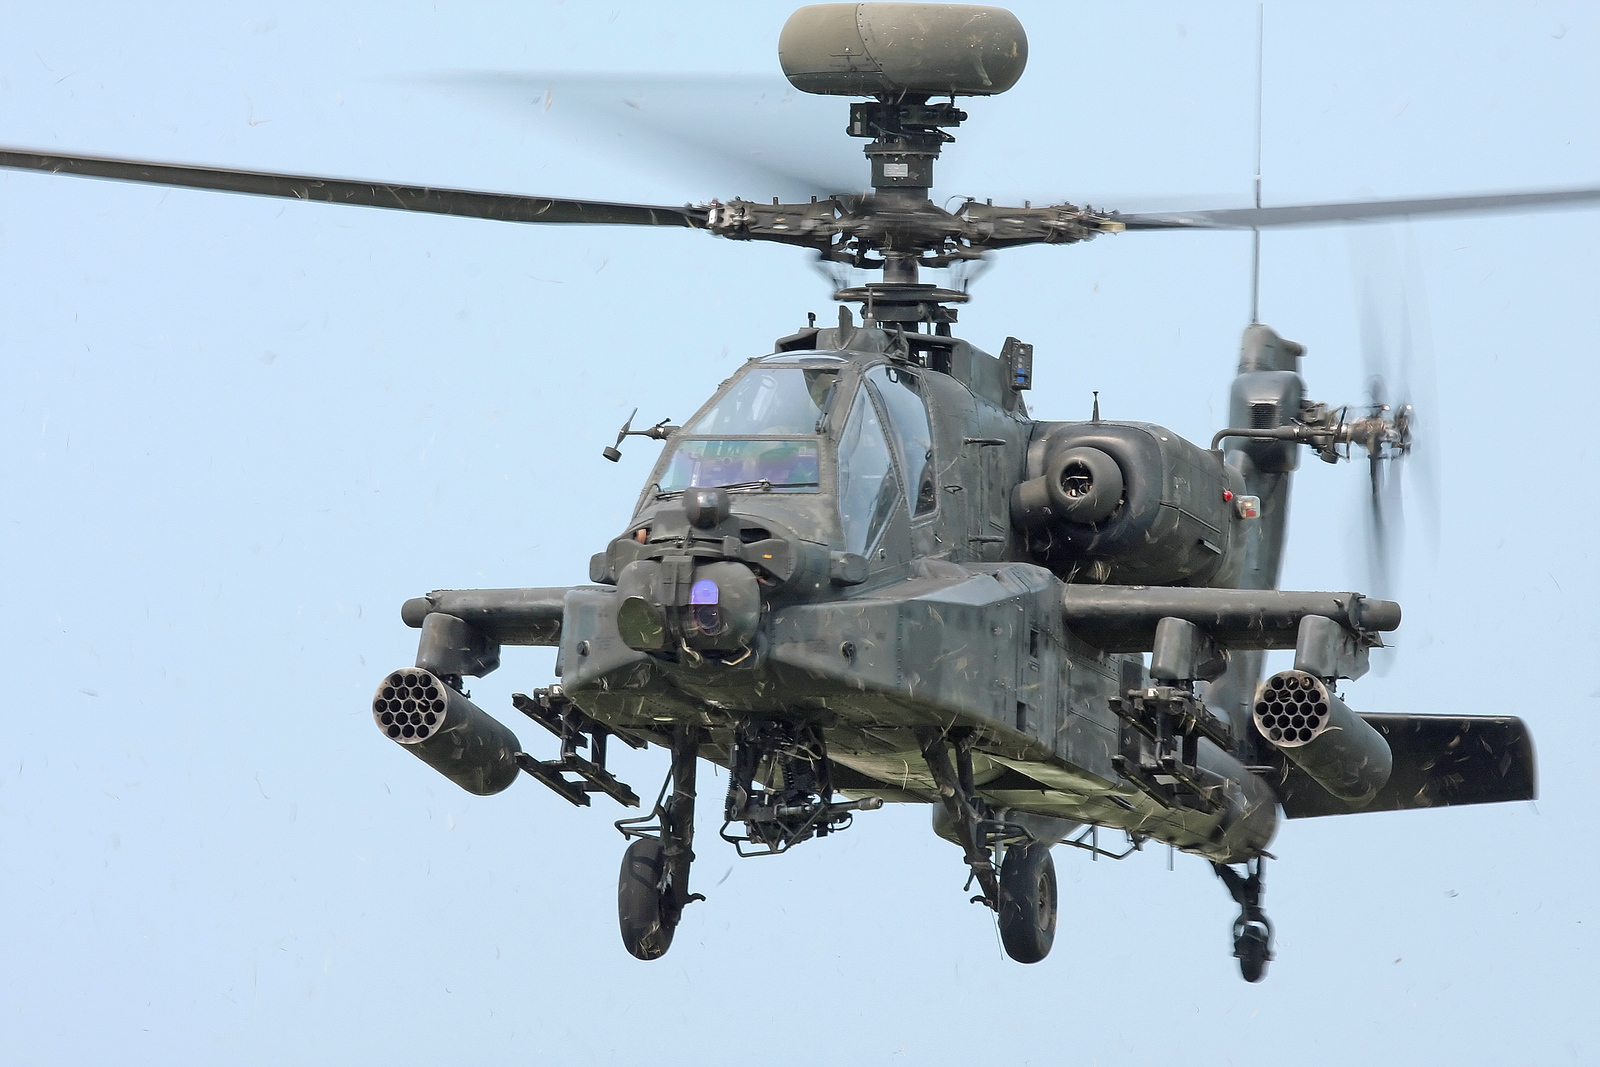 Looking at the front of a hovering Apache Longbow helicopter